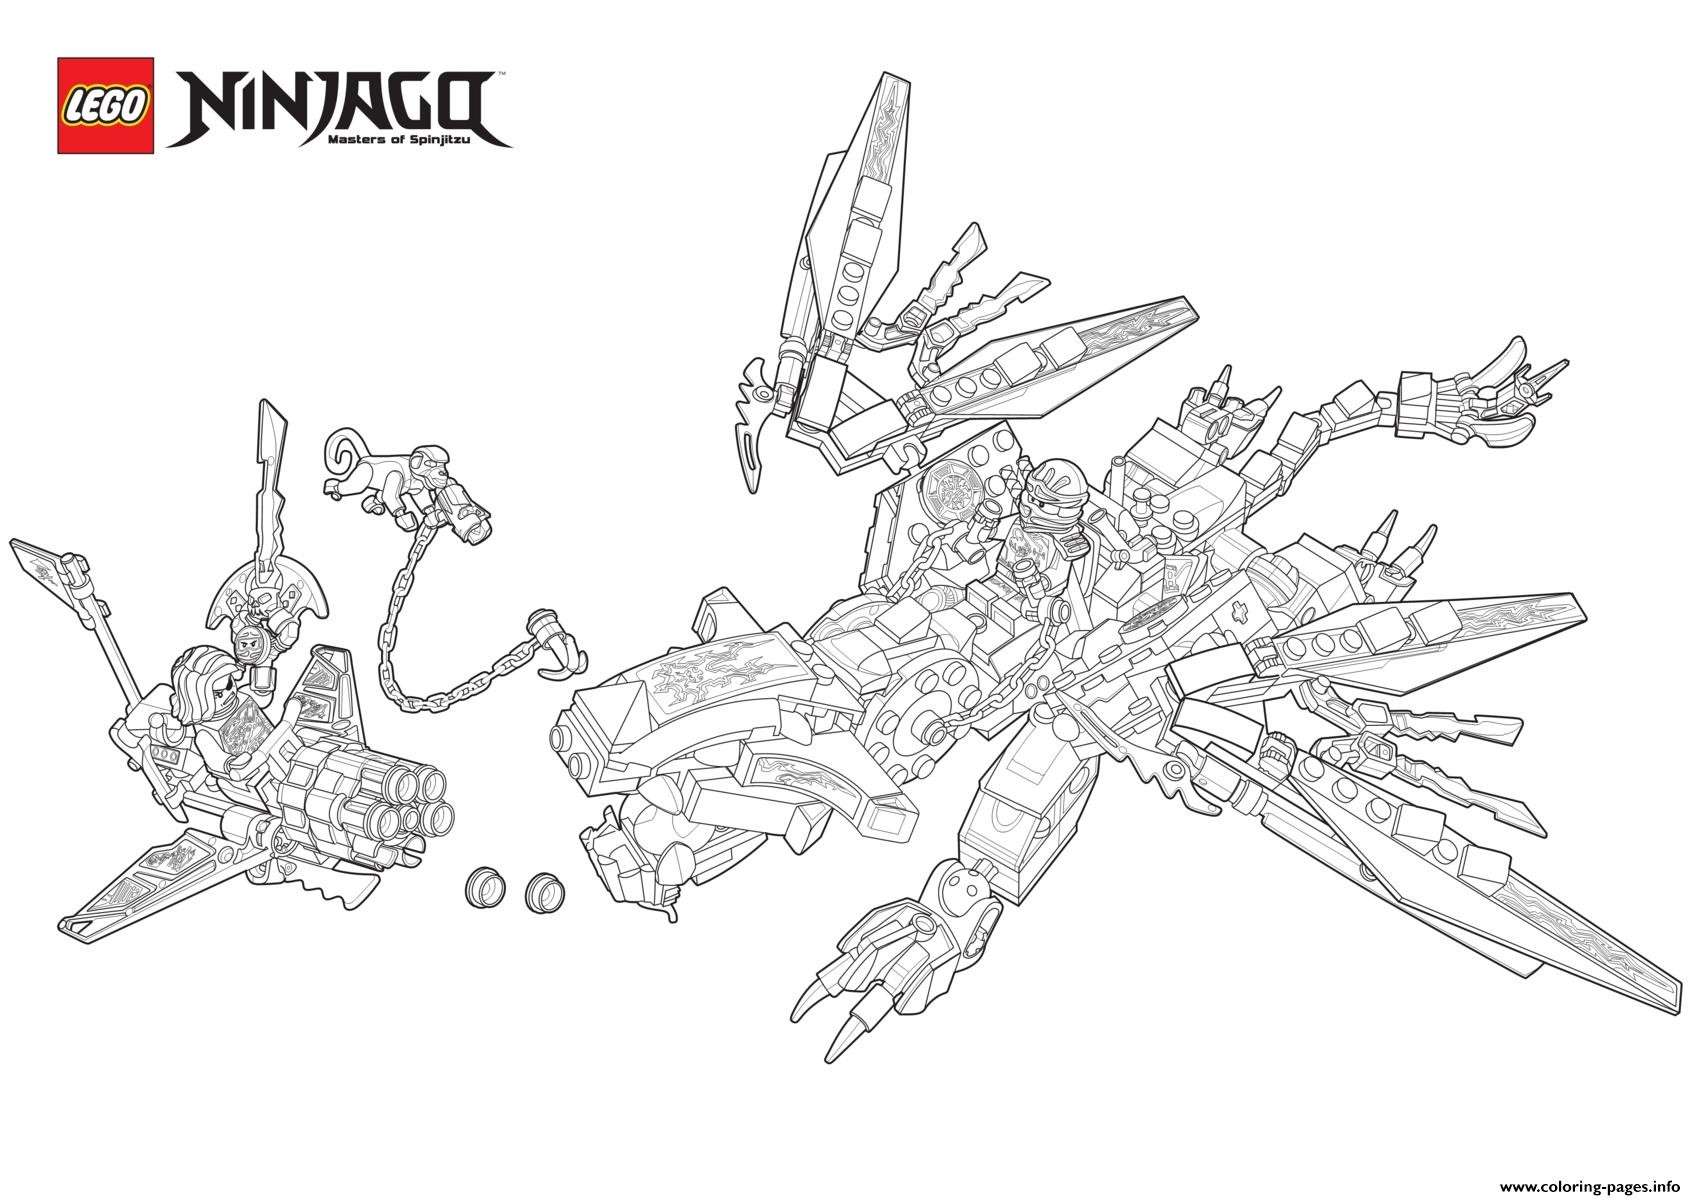 NINJAGO COLORING Pages Free Download Printable